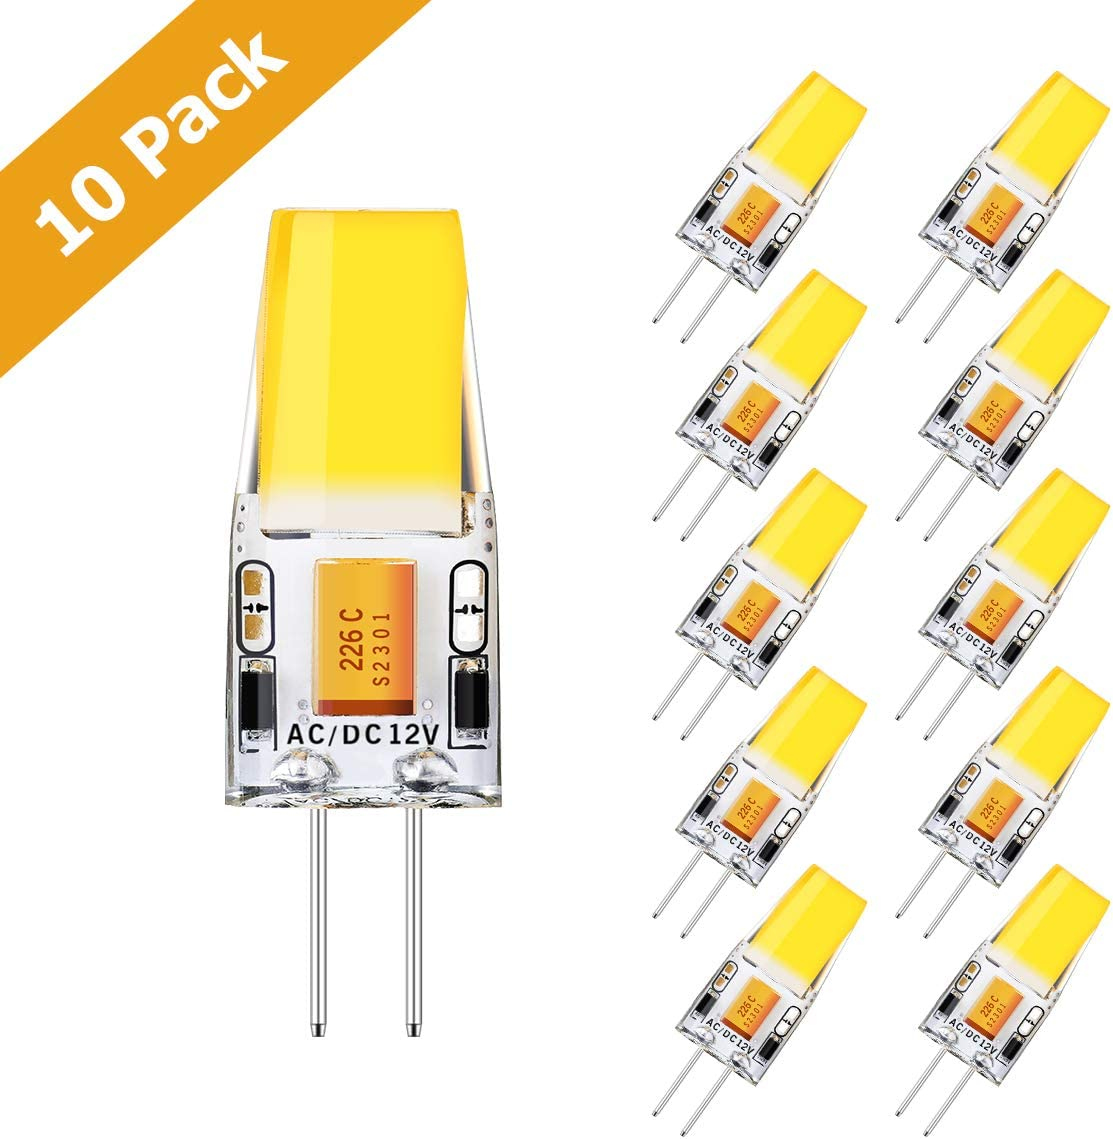 Kingso 10 Pack G4 Led Bulbs 350lm 3 5w Replaces 35w Halogen Bulbs